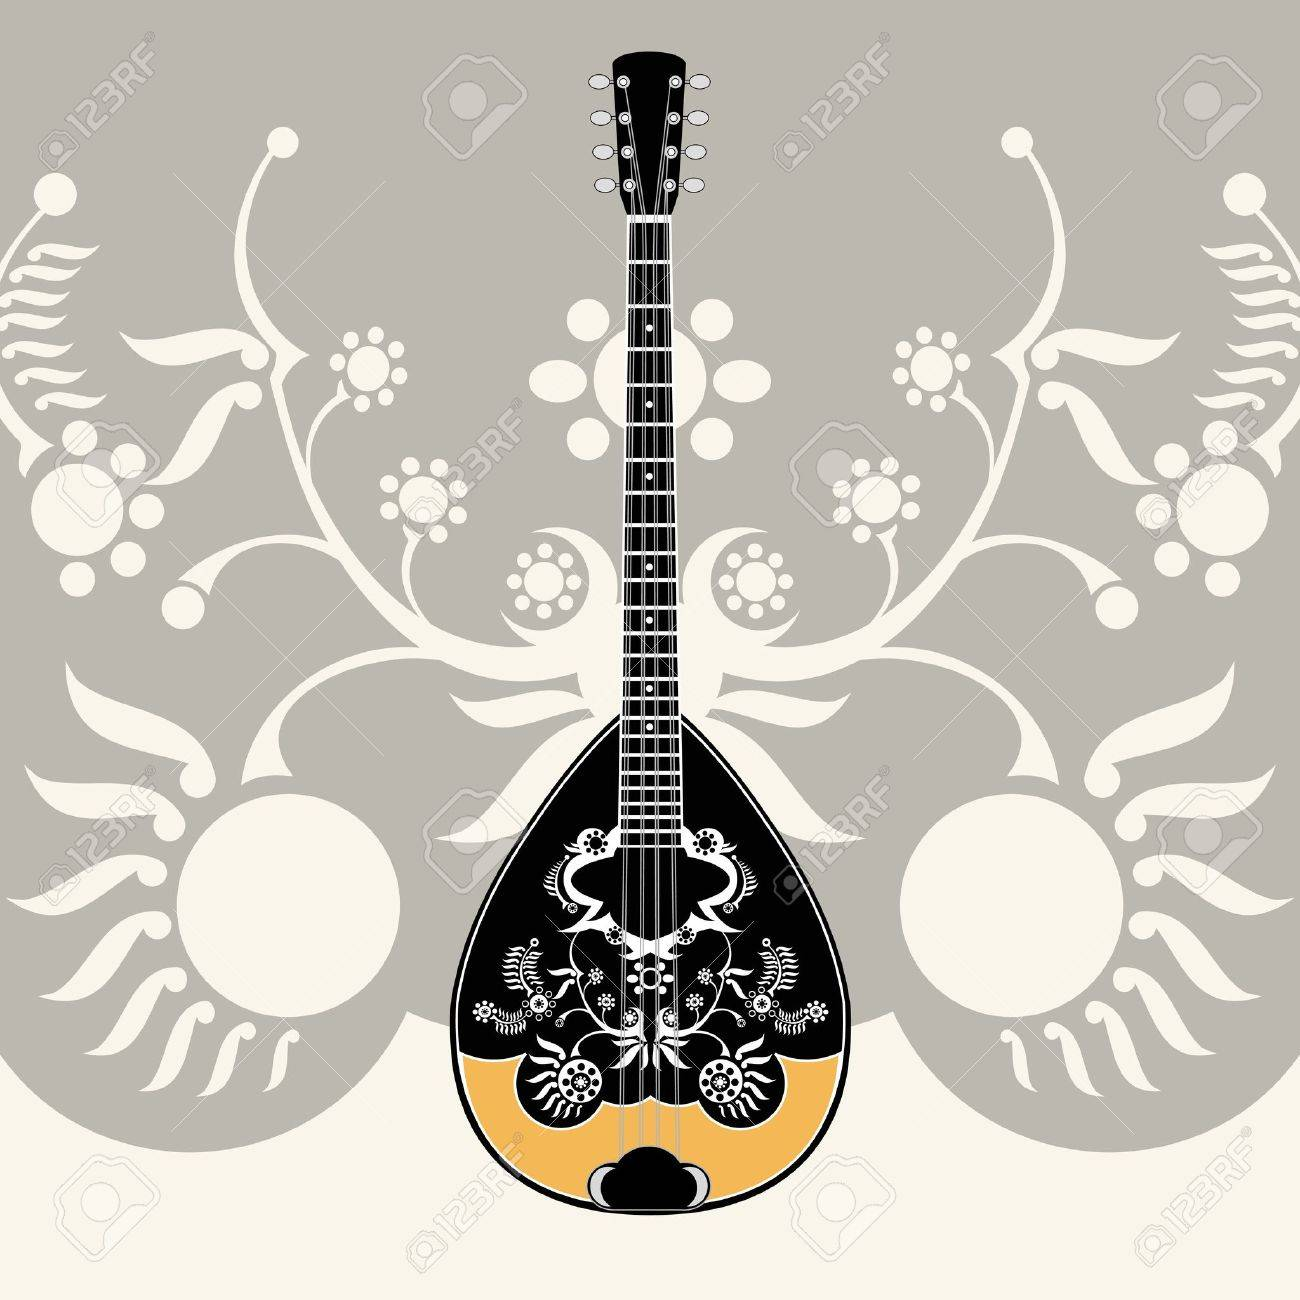 stylized greek folk musical instrument with decorative background, Stock Vector - 11187373